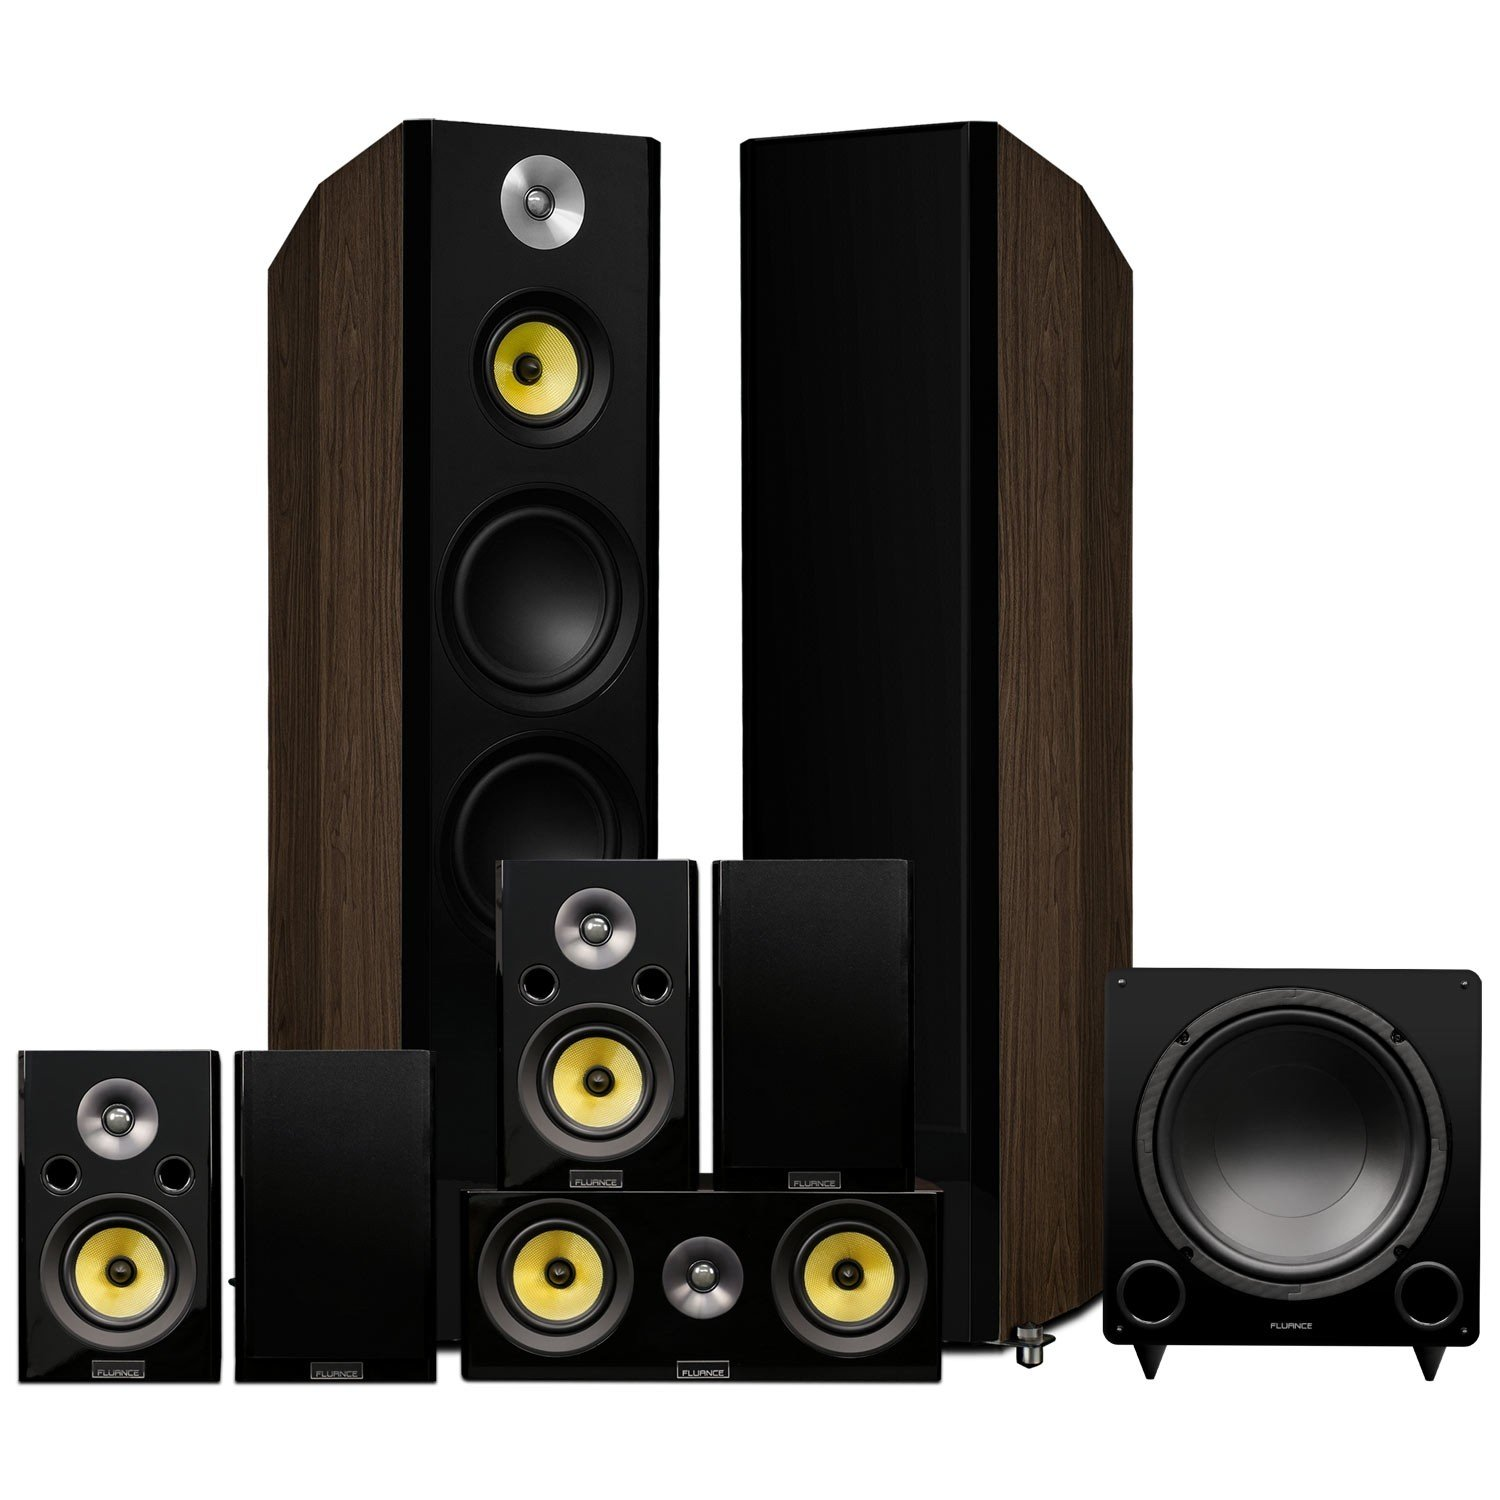 Signature Series Surround Sound Home Theater 7.1 Channel Speaker System - Walnut